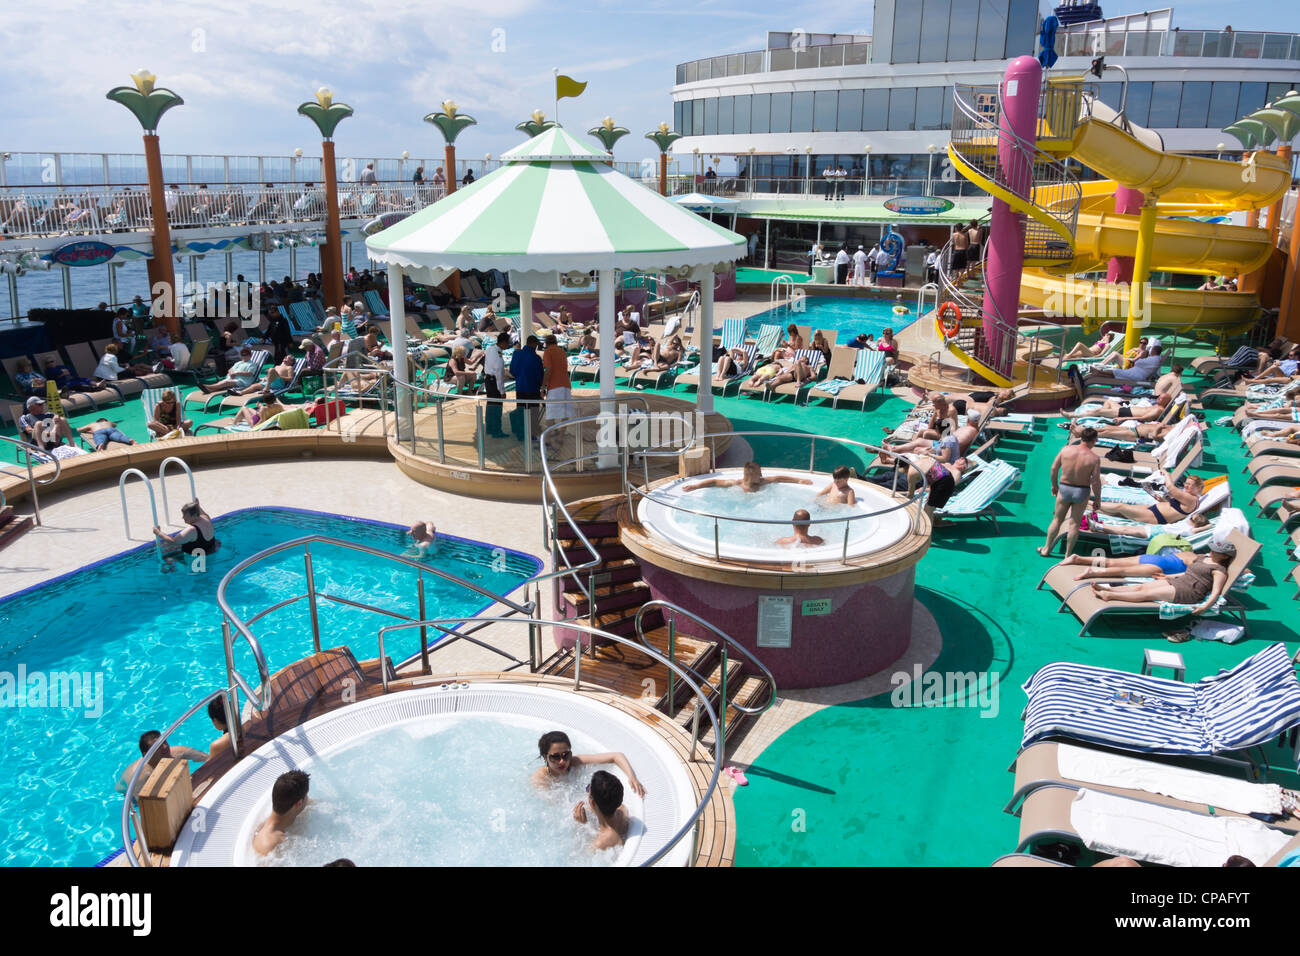 Norwegian jade cruise ship swimming pool stock photo 48175228 alamy for River cruise ships with swimming pool